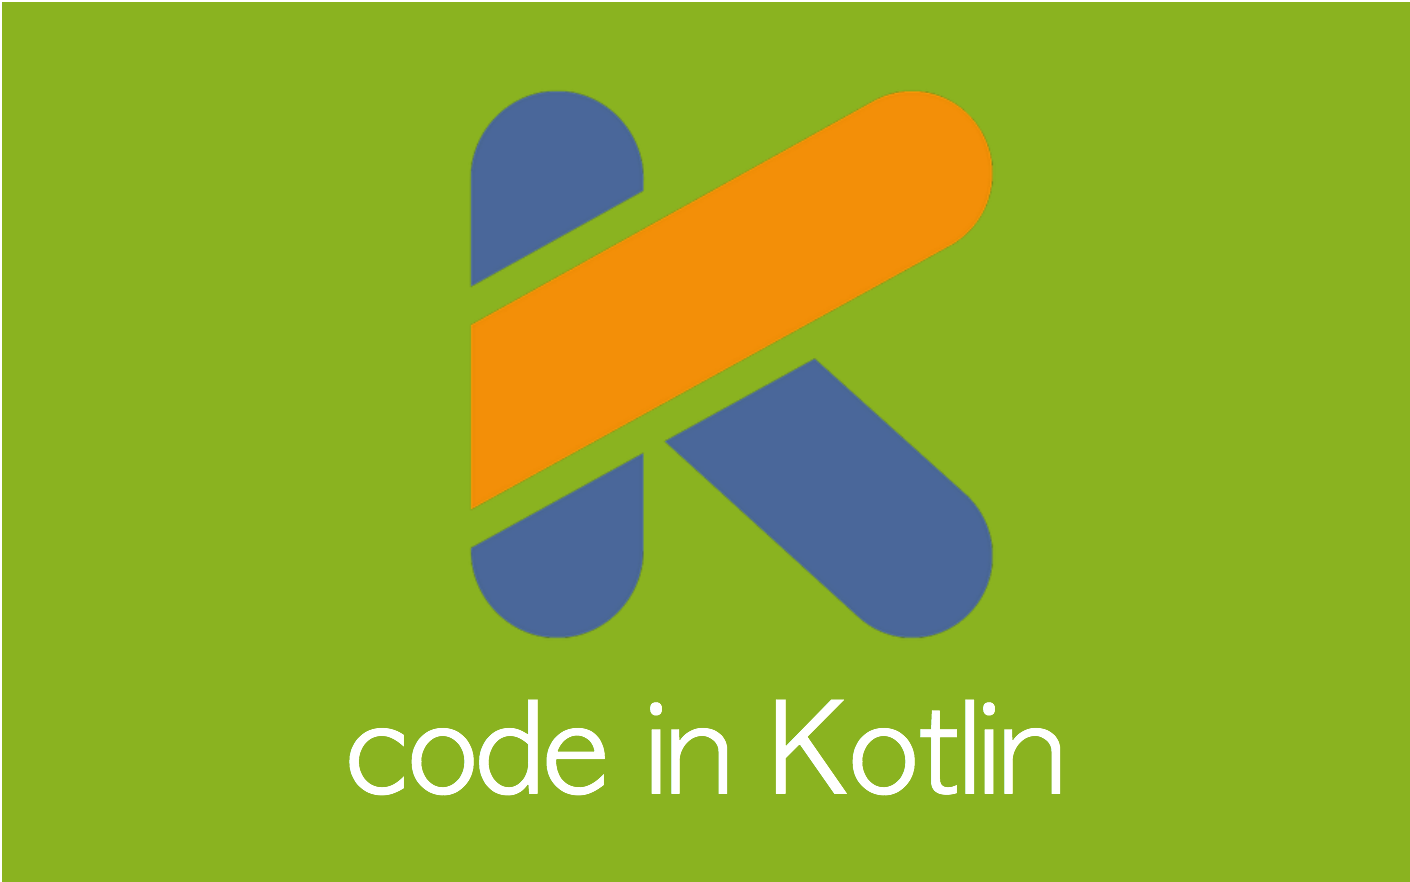 From Java to Kotlin with lots of fun